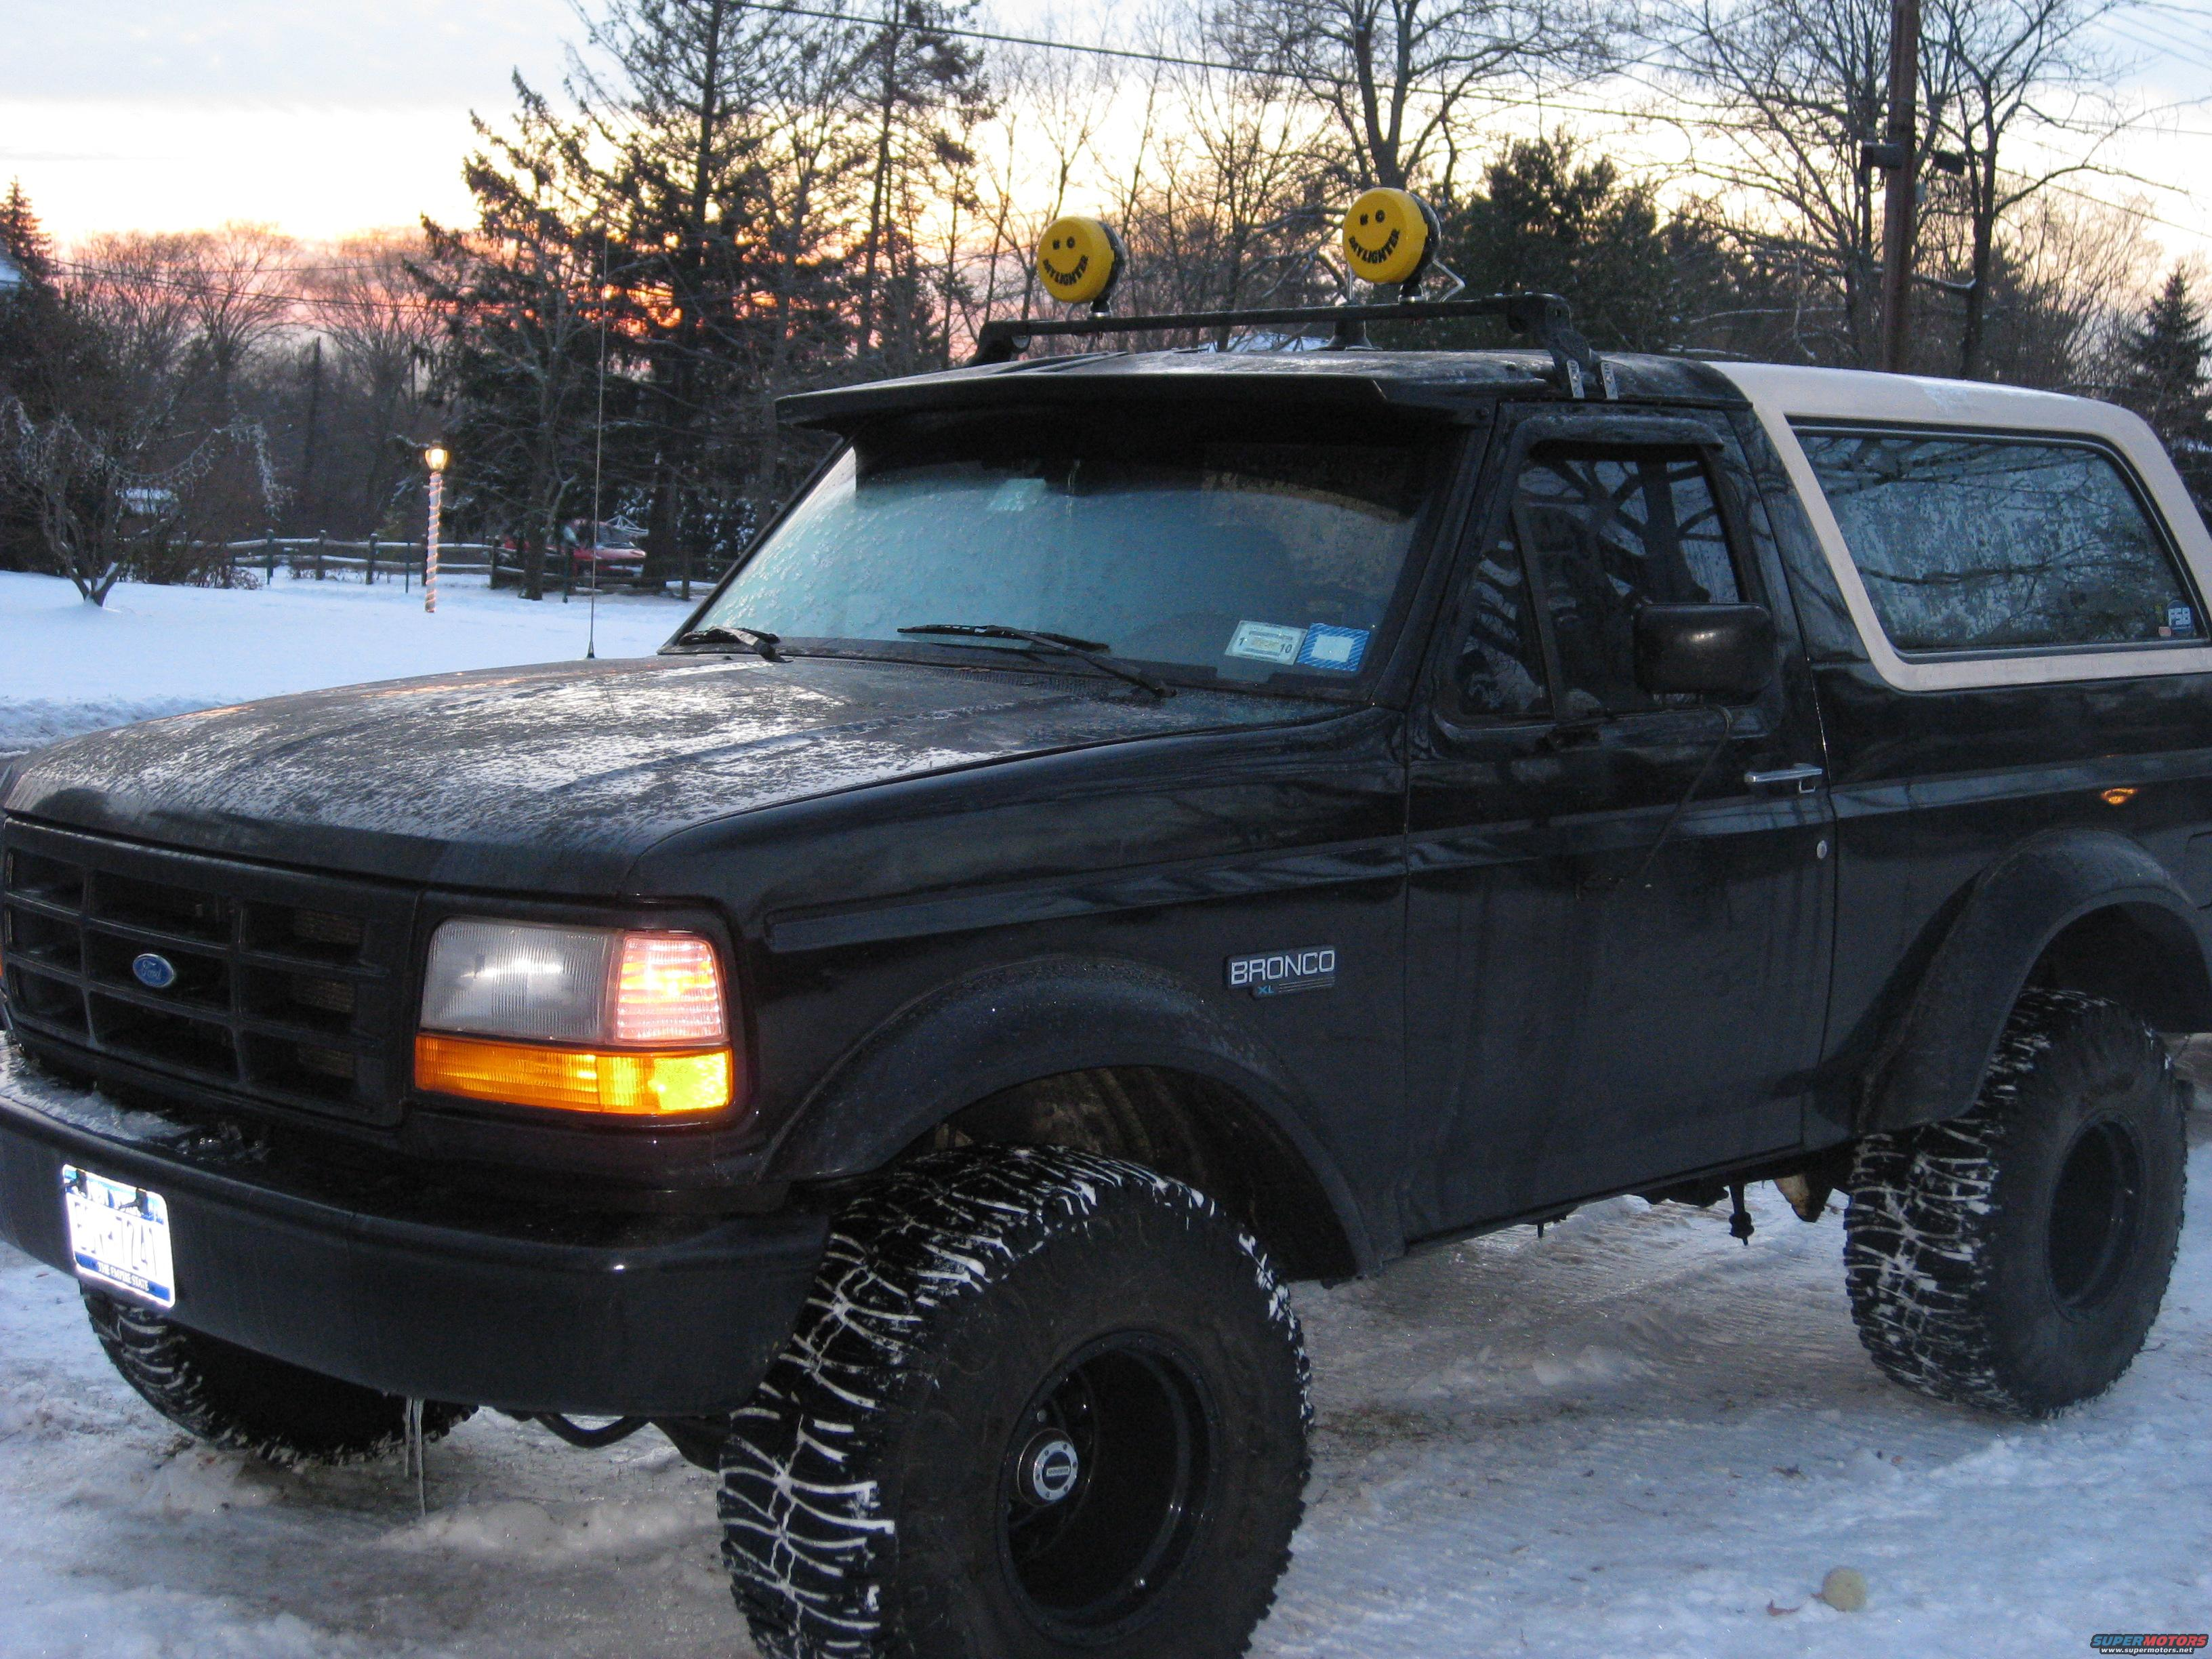 1995 Ford Bronco bronco with the light bar picture | SuperMotors.net